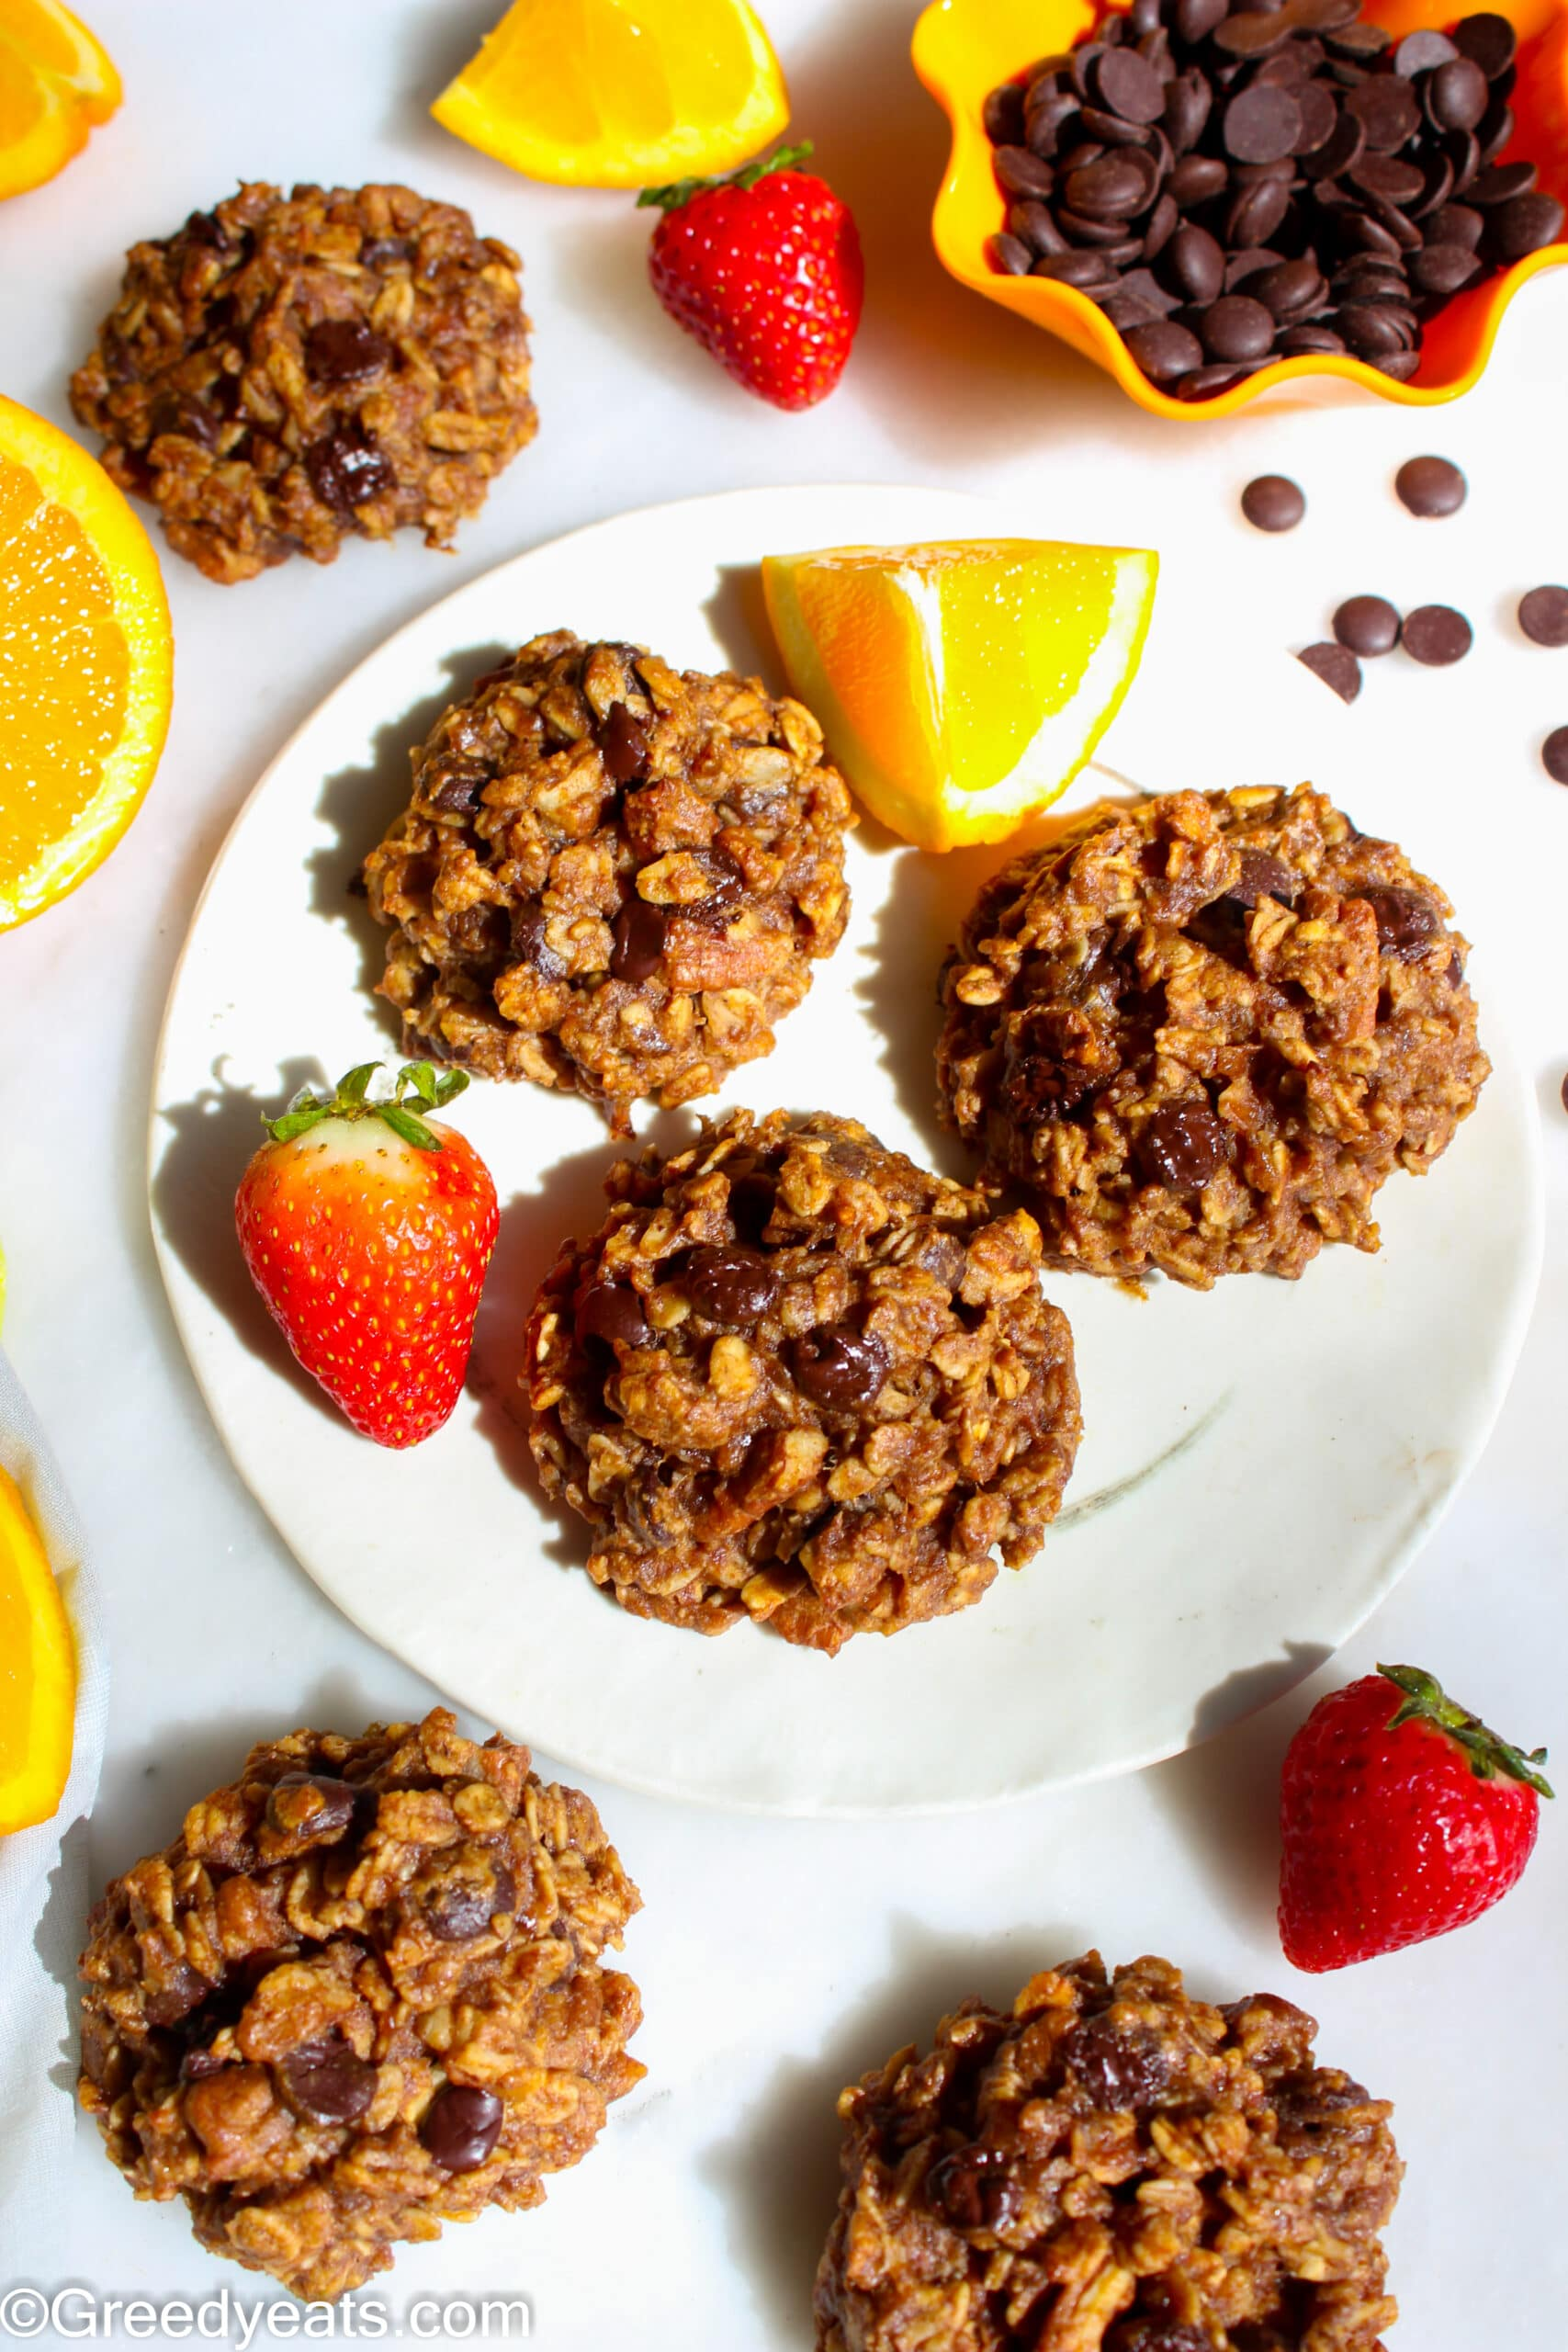 Thick and chewy Oatmeal Breakfast Cookies on a plate with chocolate chips and fresh fruits.